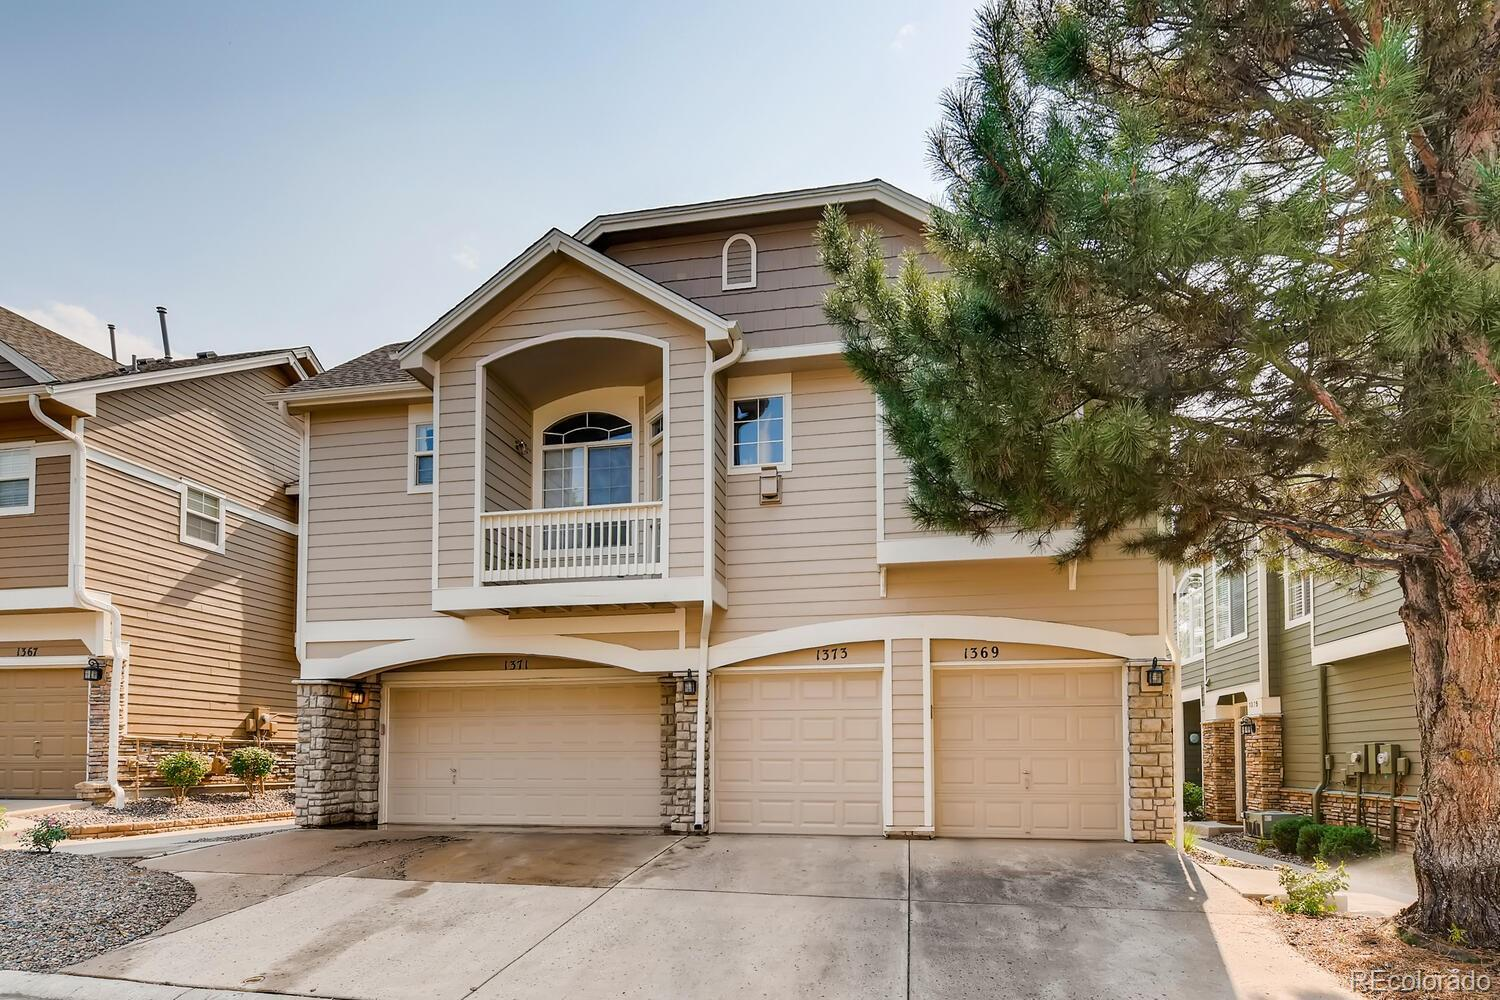 1371 Carlyle Park Circle, Highlands Ranch, CO 80129 - #: 5200329